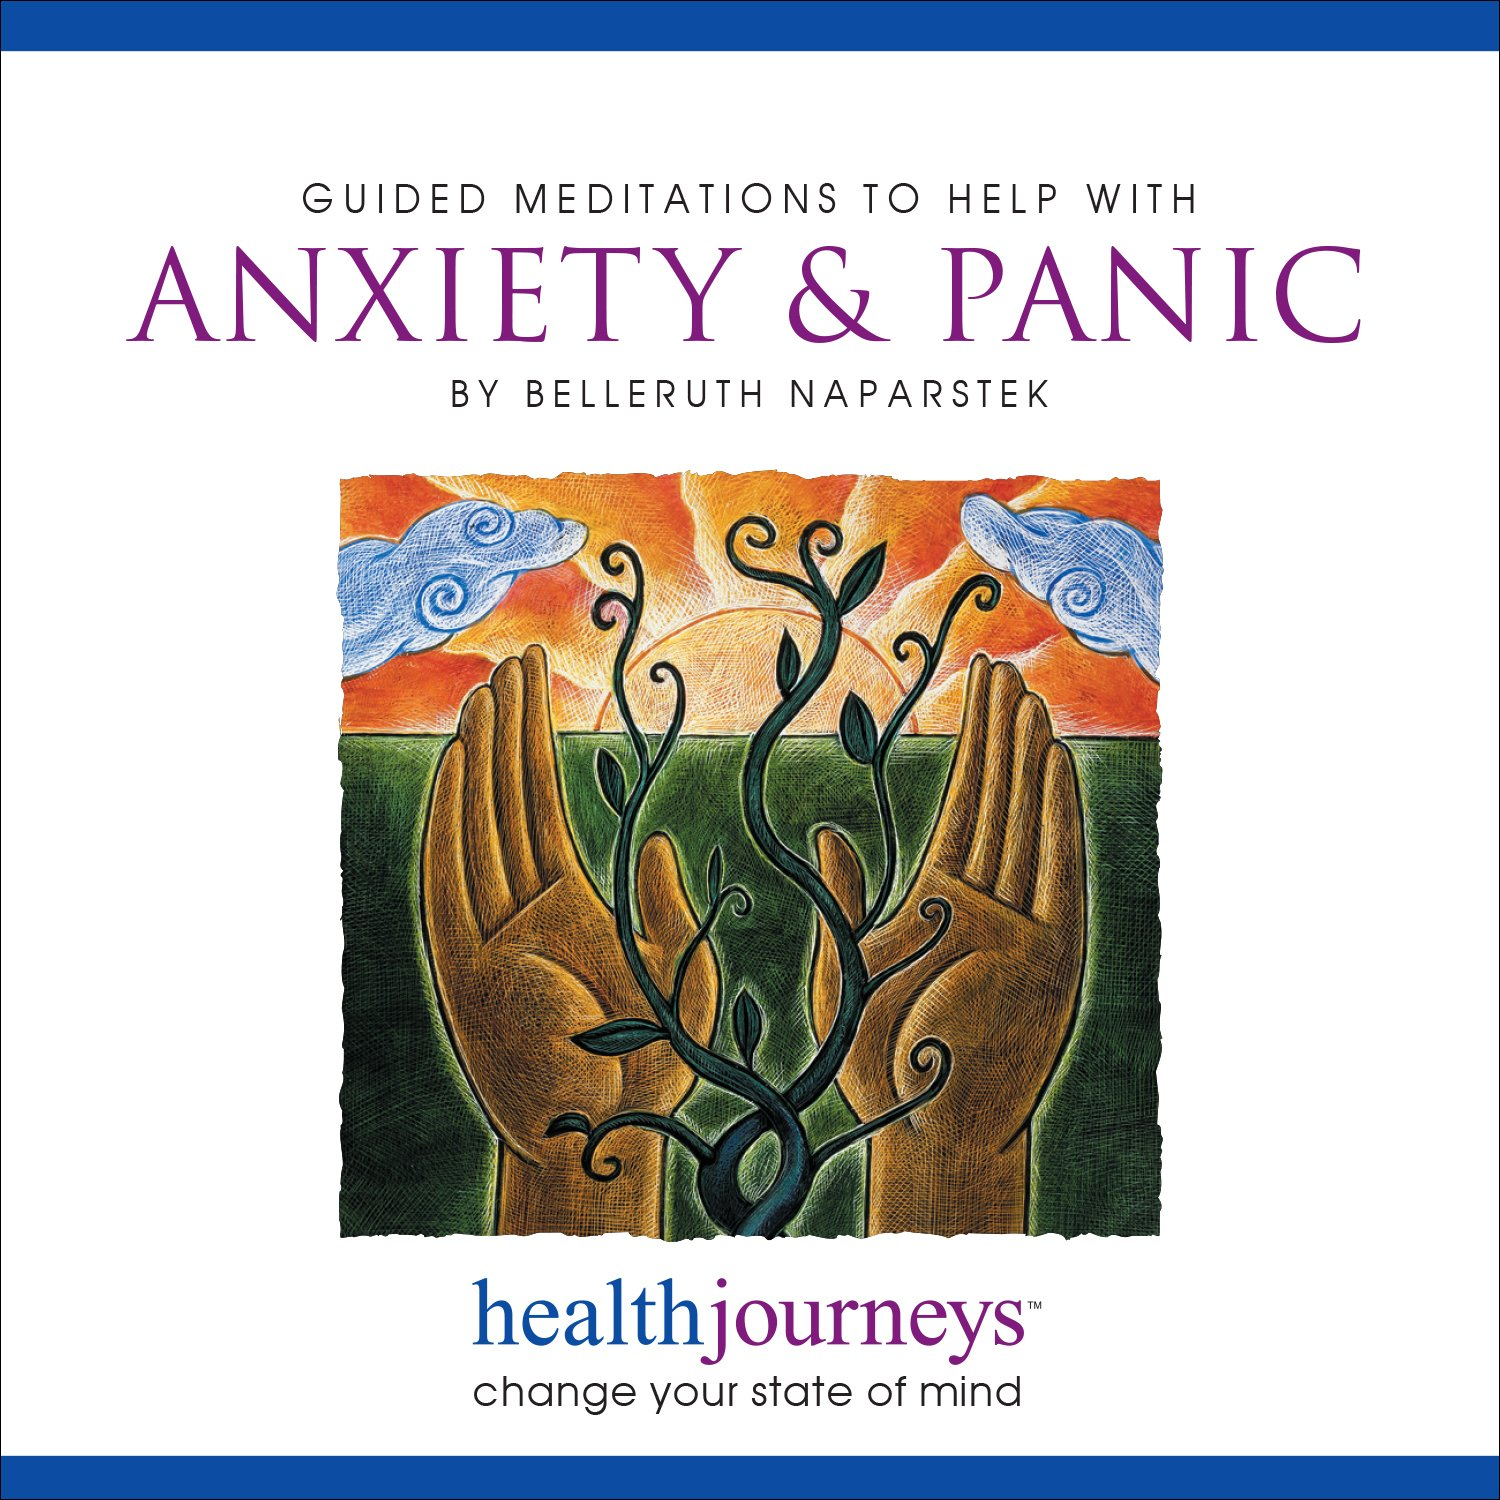 Guided Meditations to Help with Anxiety & Panic- Three Brief Anxiety Relieving Exercises